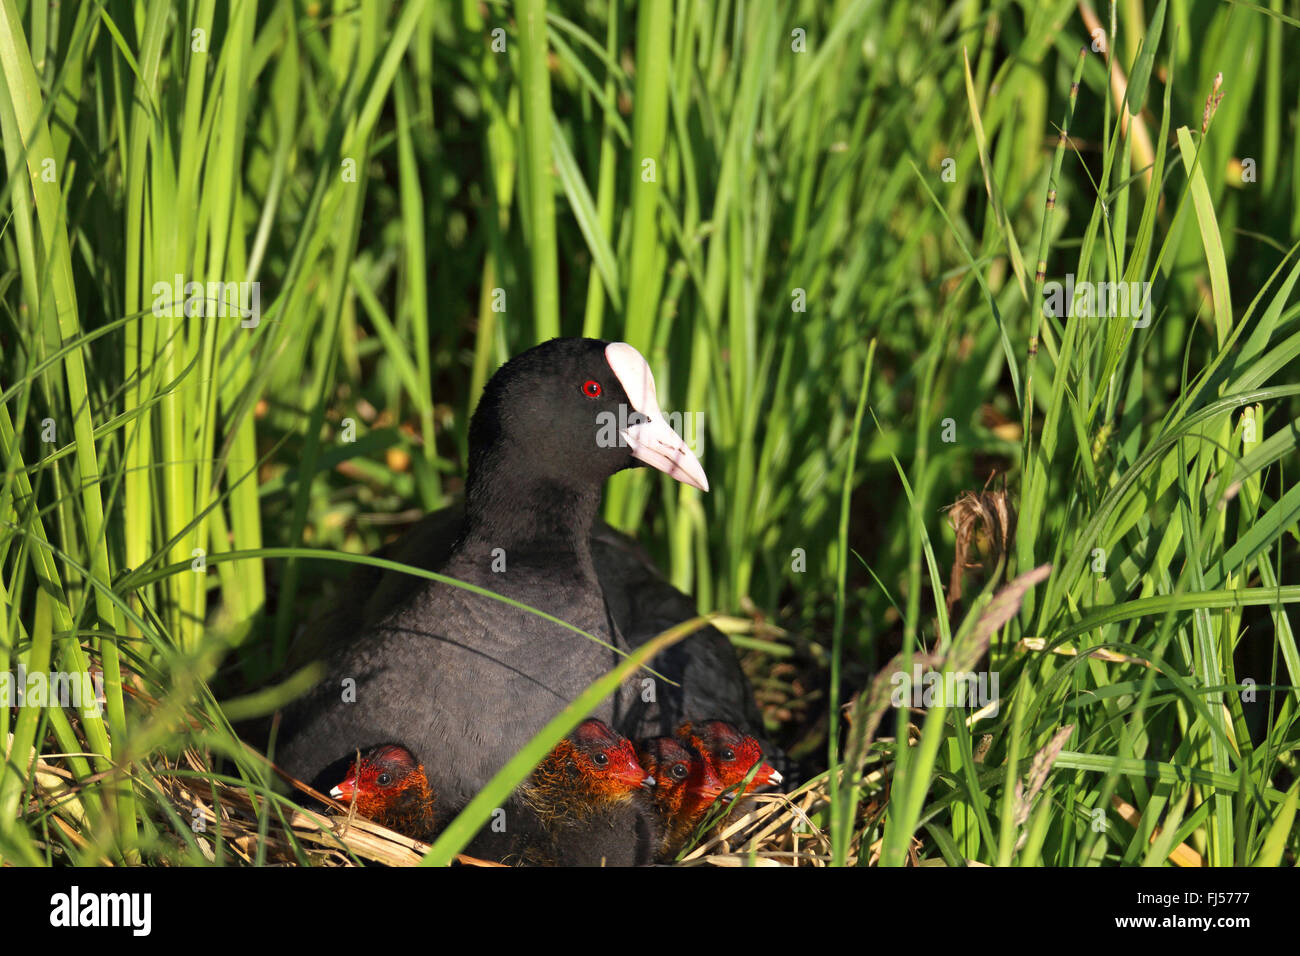 black coot (Fulica atra), female with fledglings in the nest, Netherlands, Eempolder - Stock Image